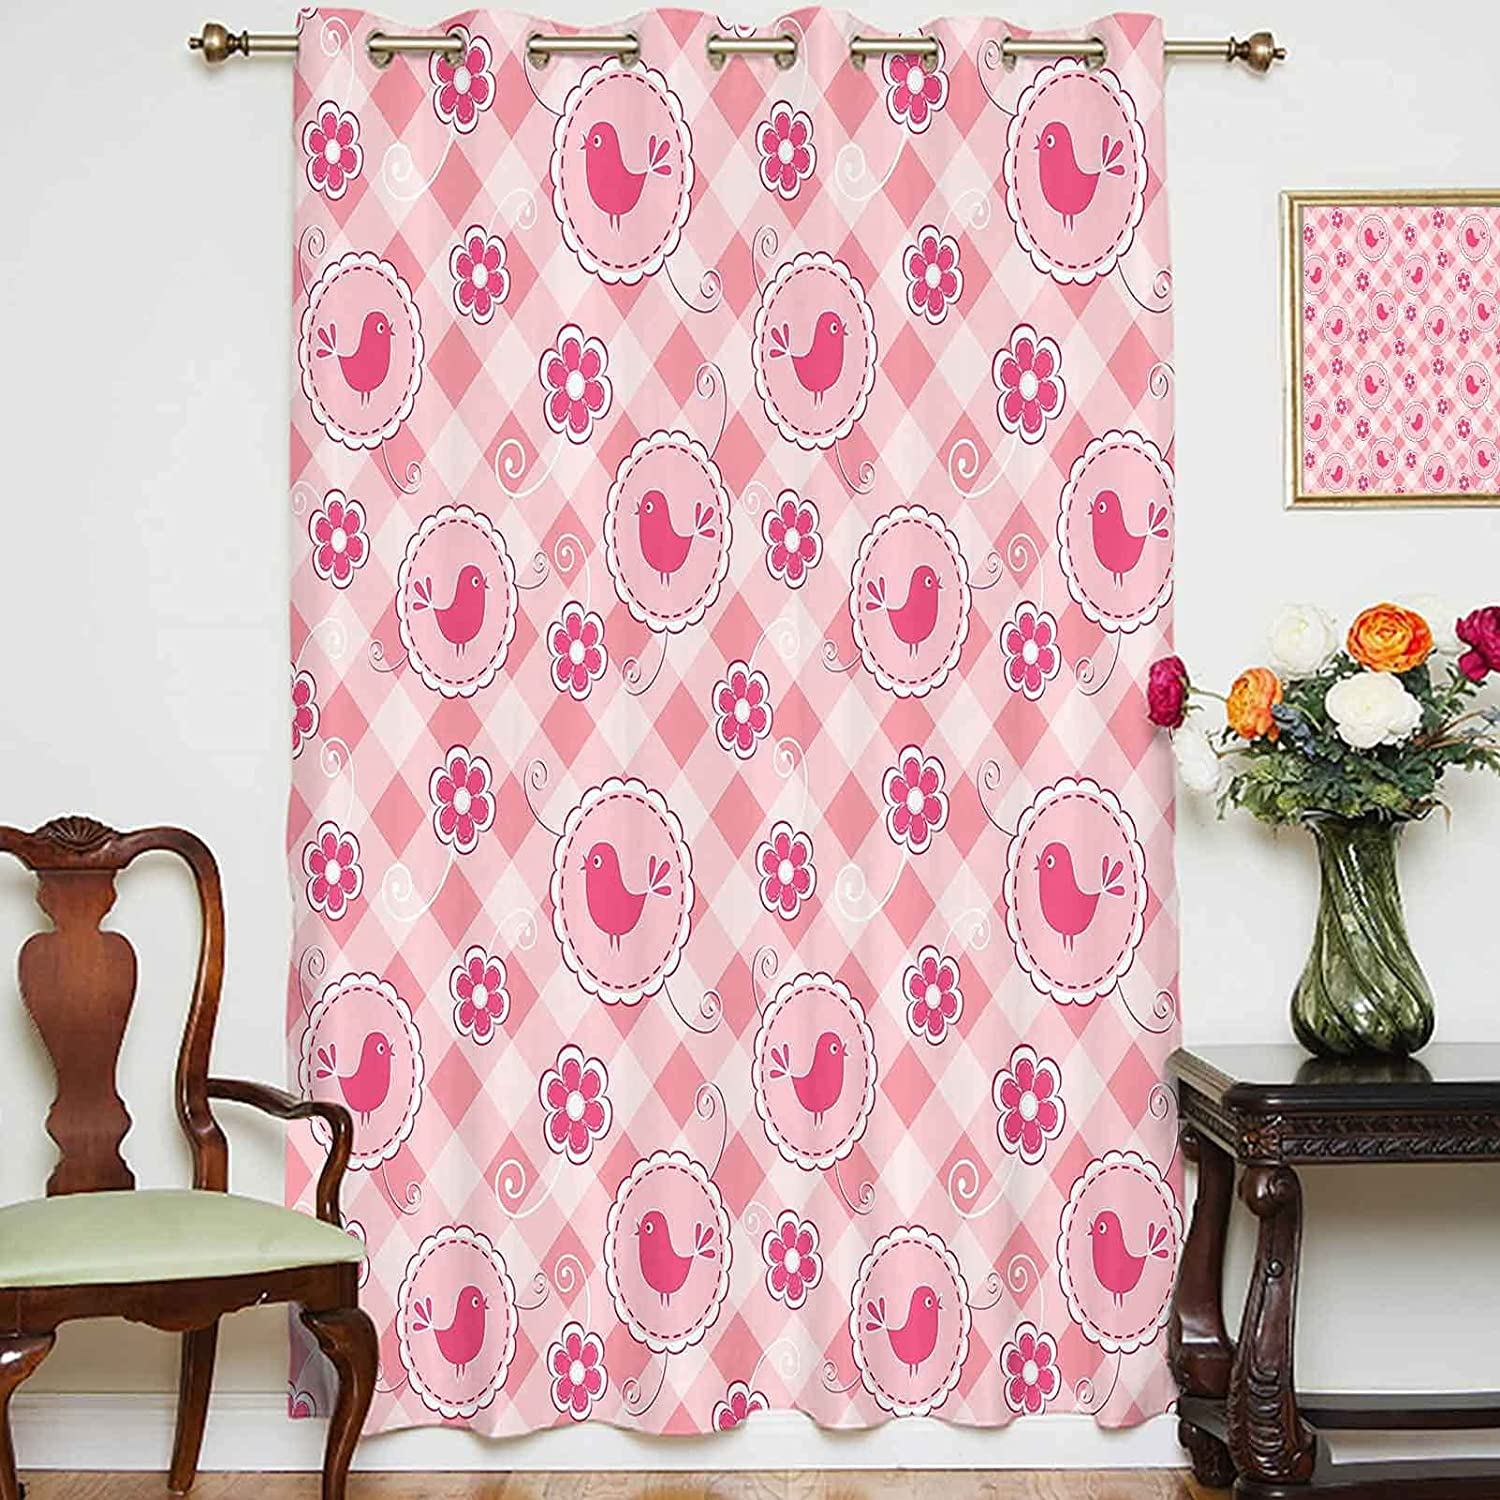 Blackout Curtains Panels Cheerful Composition Birds with Da Cute Limited San Francisco Mall Special Price